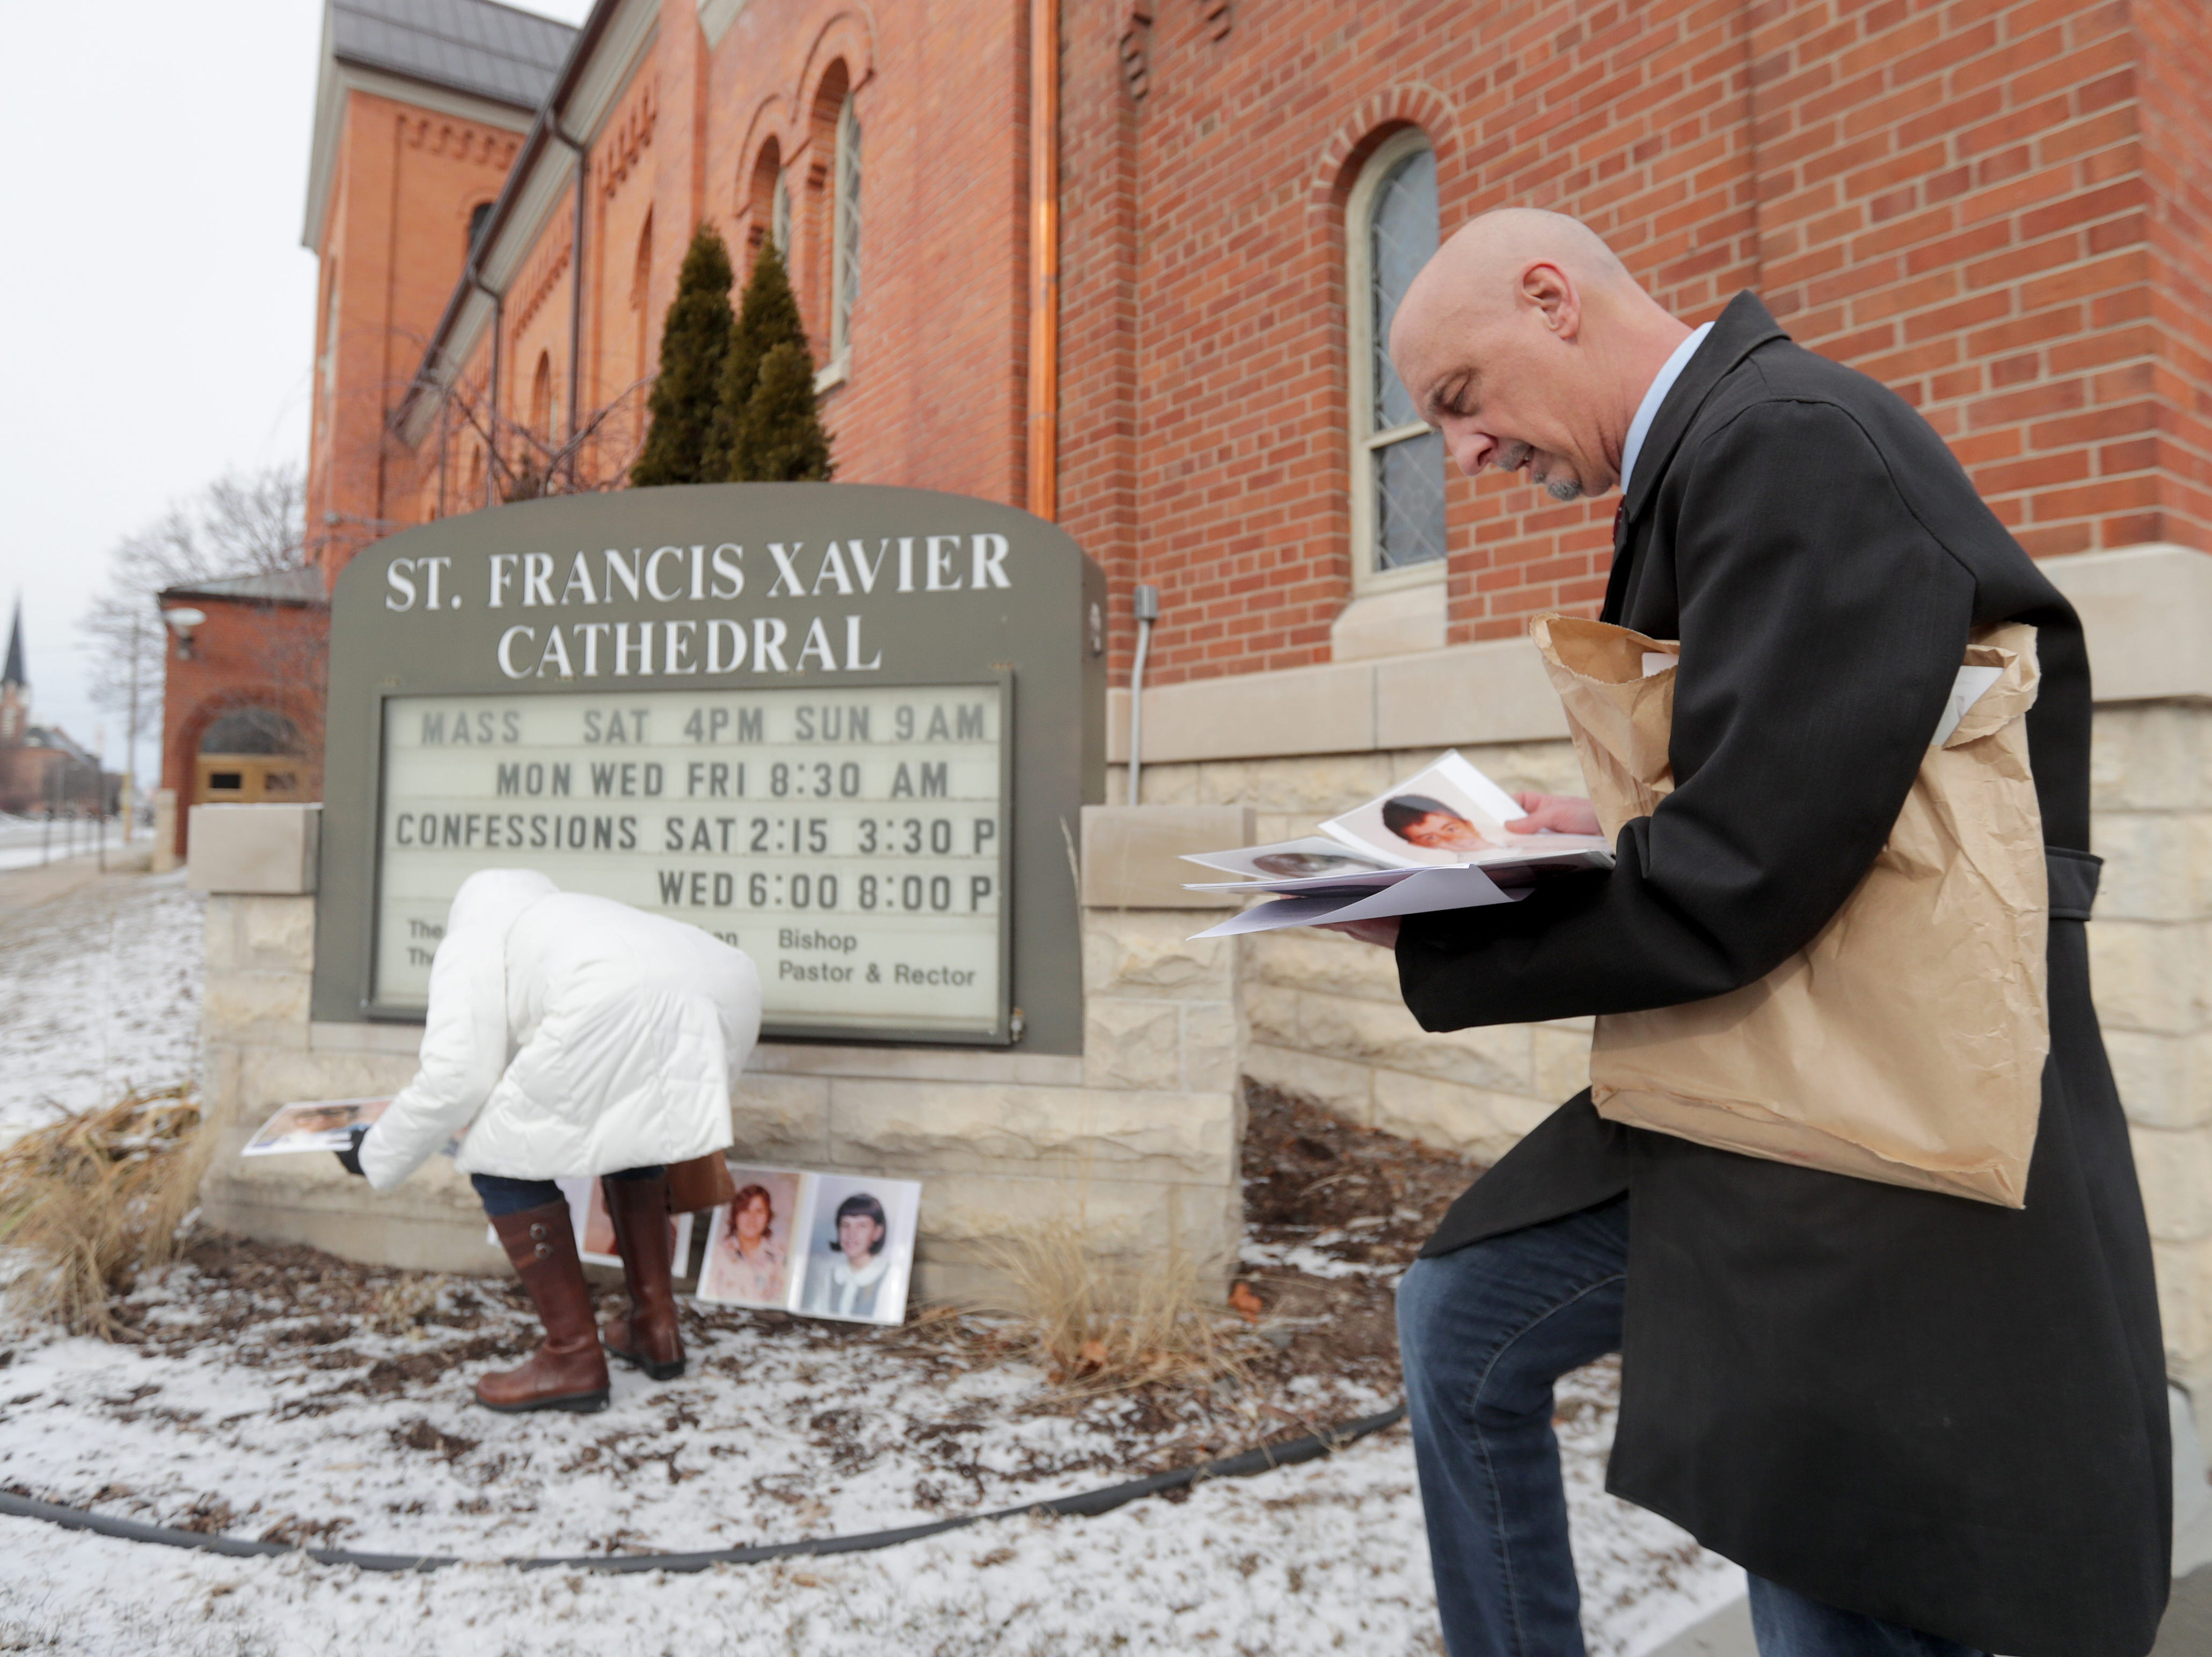 Peter Isely of Survivors Network for those Abused by Priests, looks at photos of abuse victims prior to a Jan. 18 press conference at of St. Francis Xavier Cathedral.